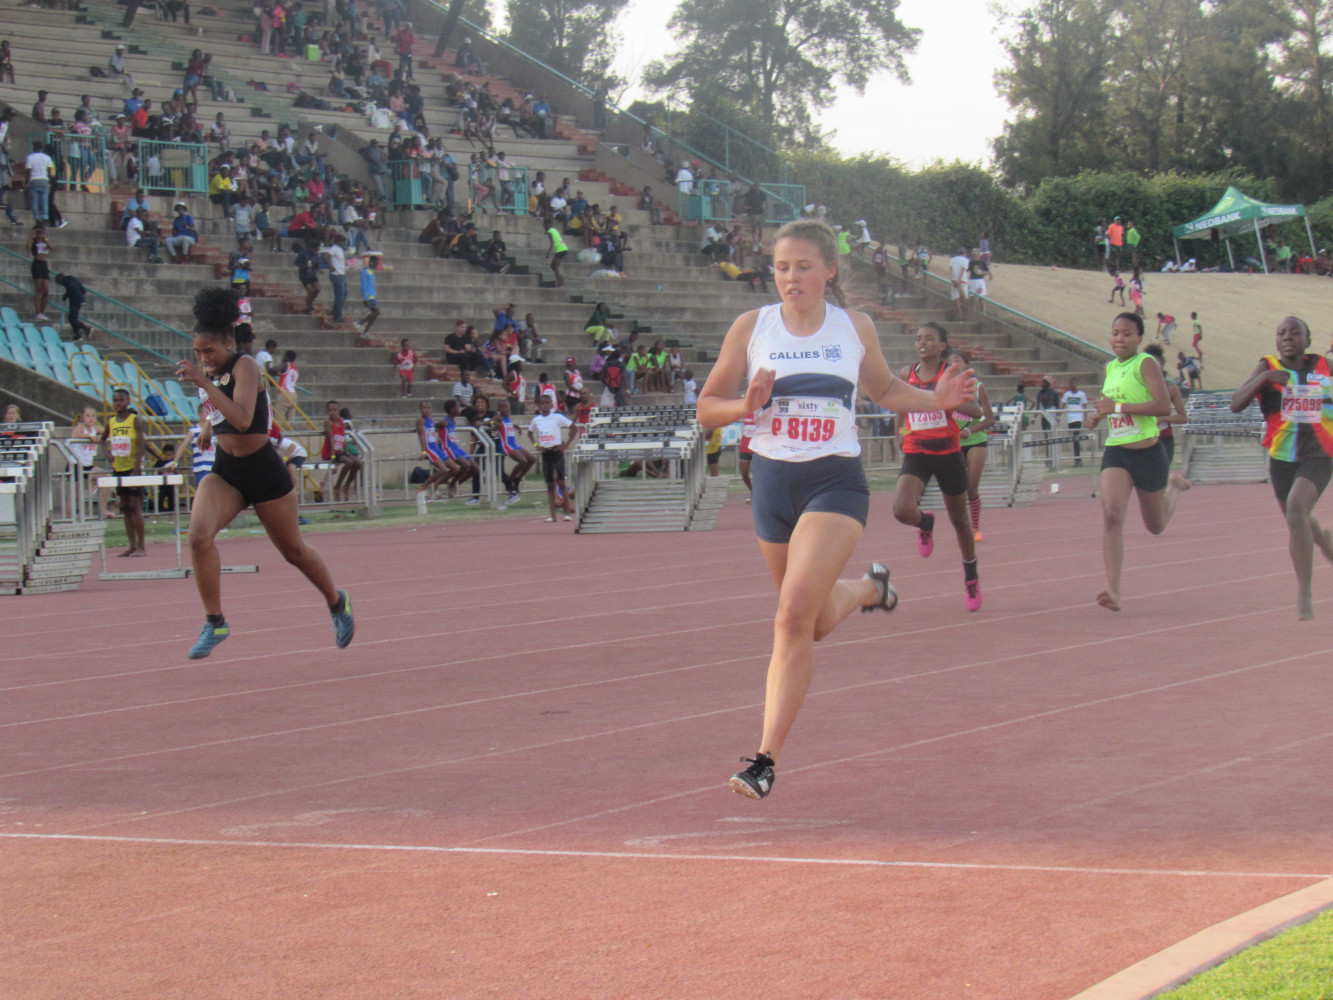 Track & Field Open Meeting Germiston Stadium (4)